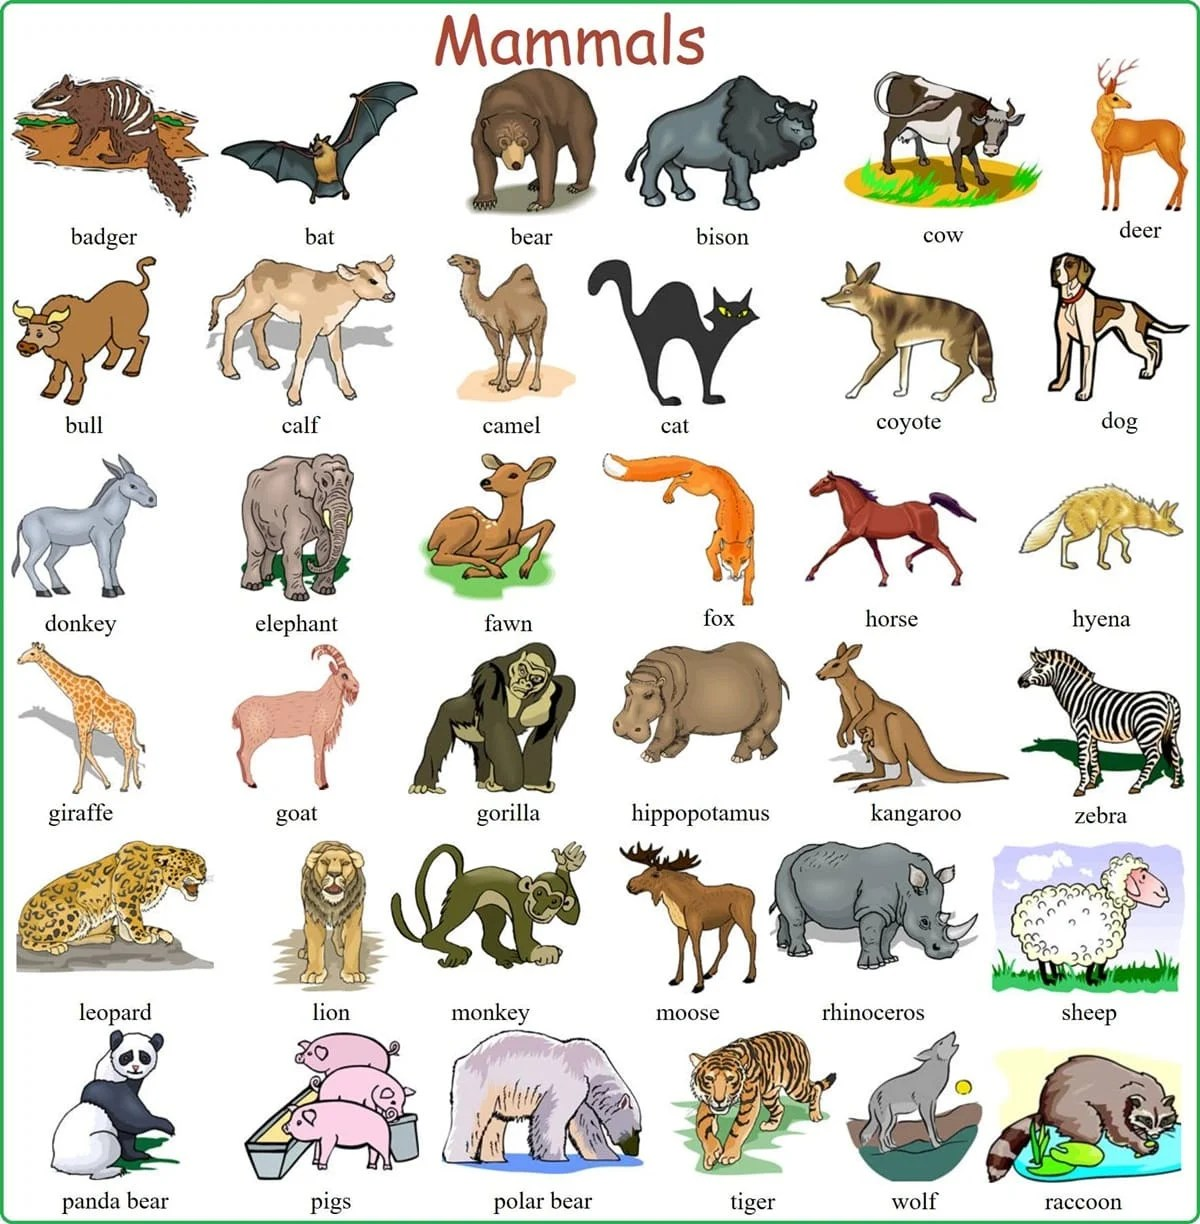 Learn English Vocabulary Through Pictures 100 Animal